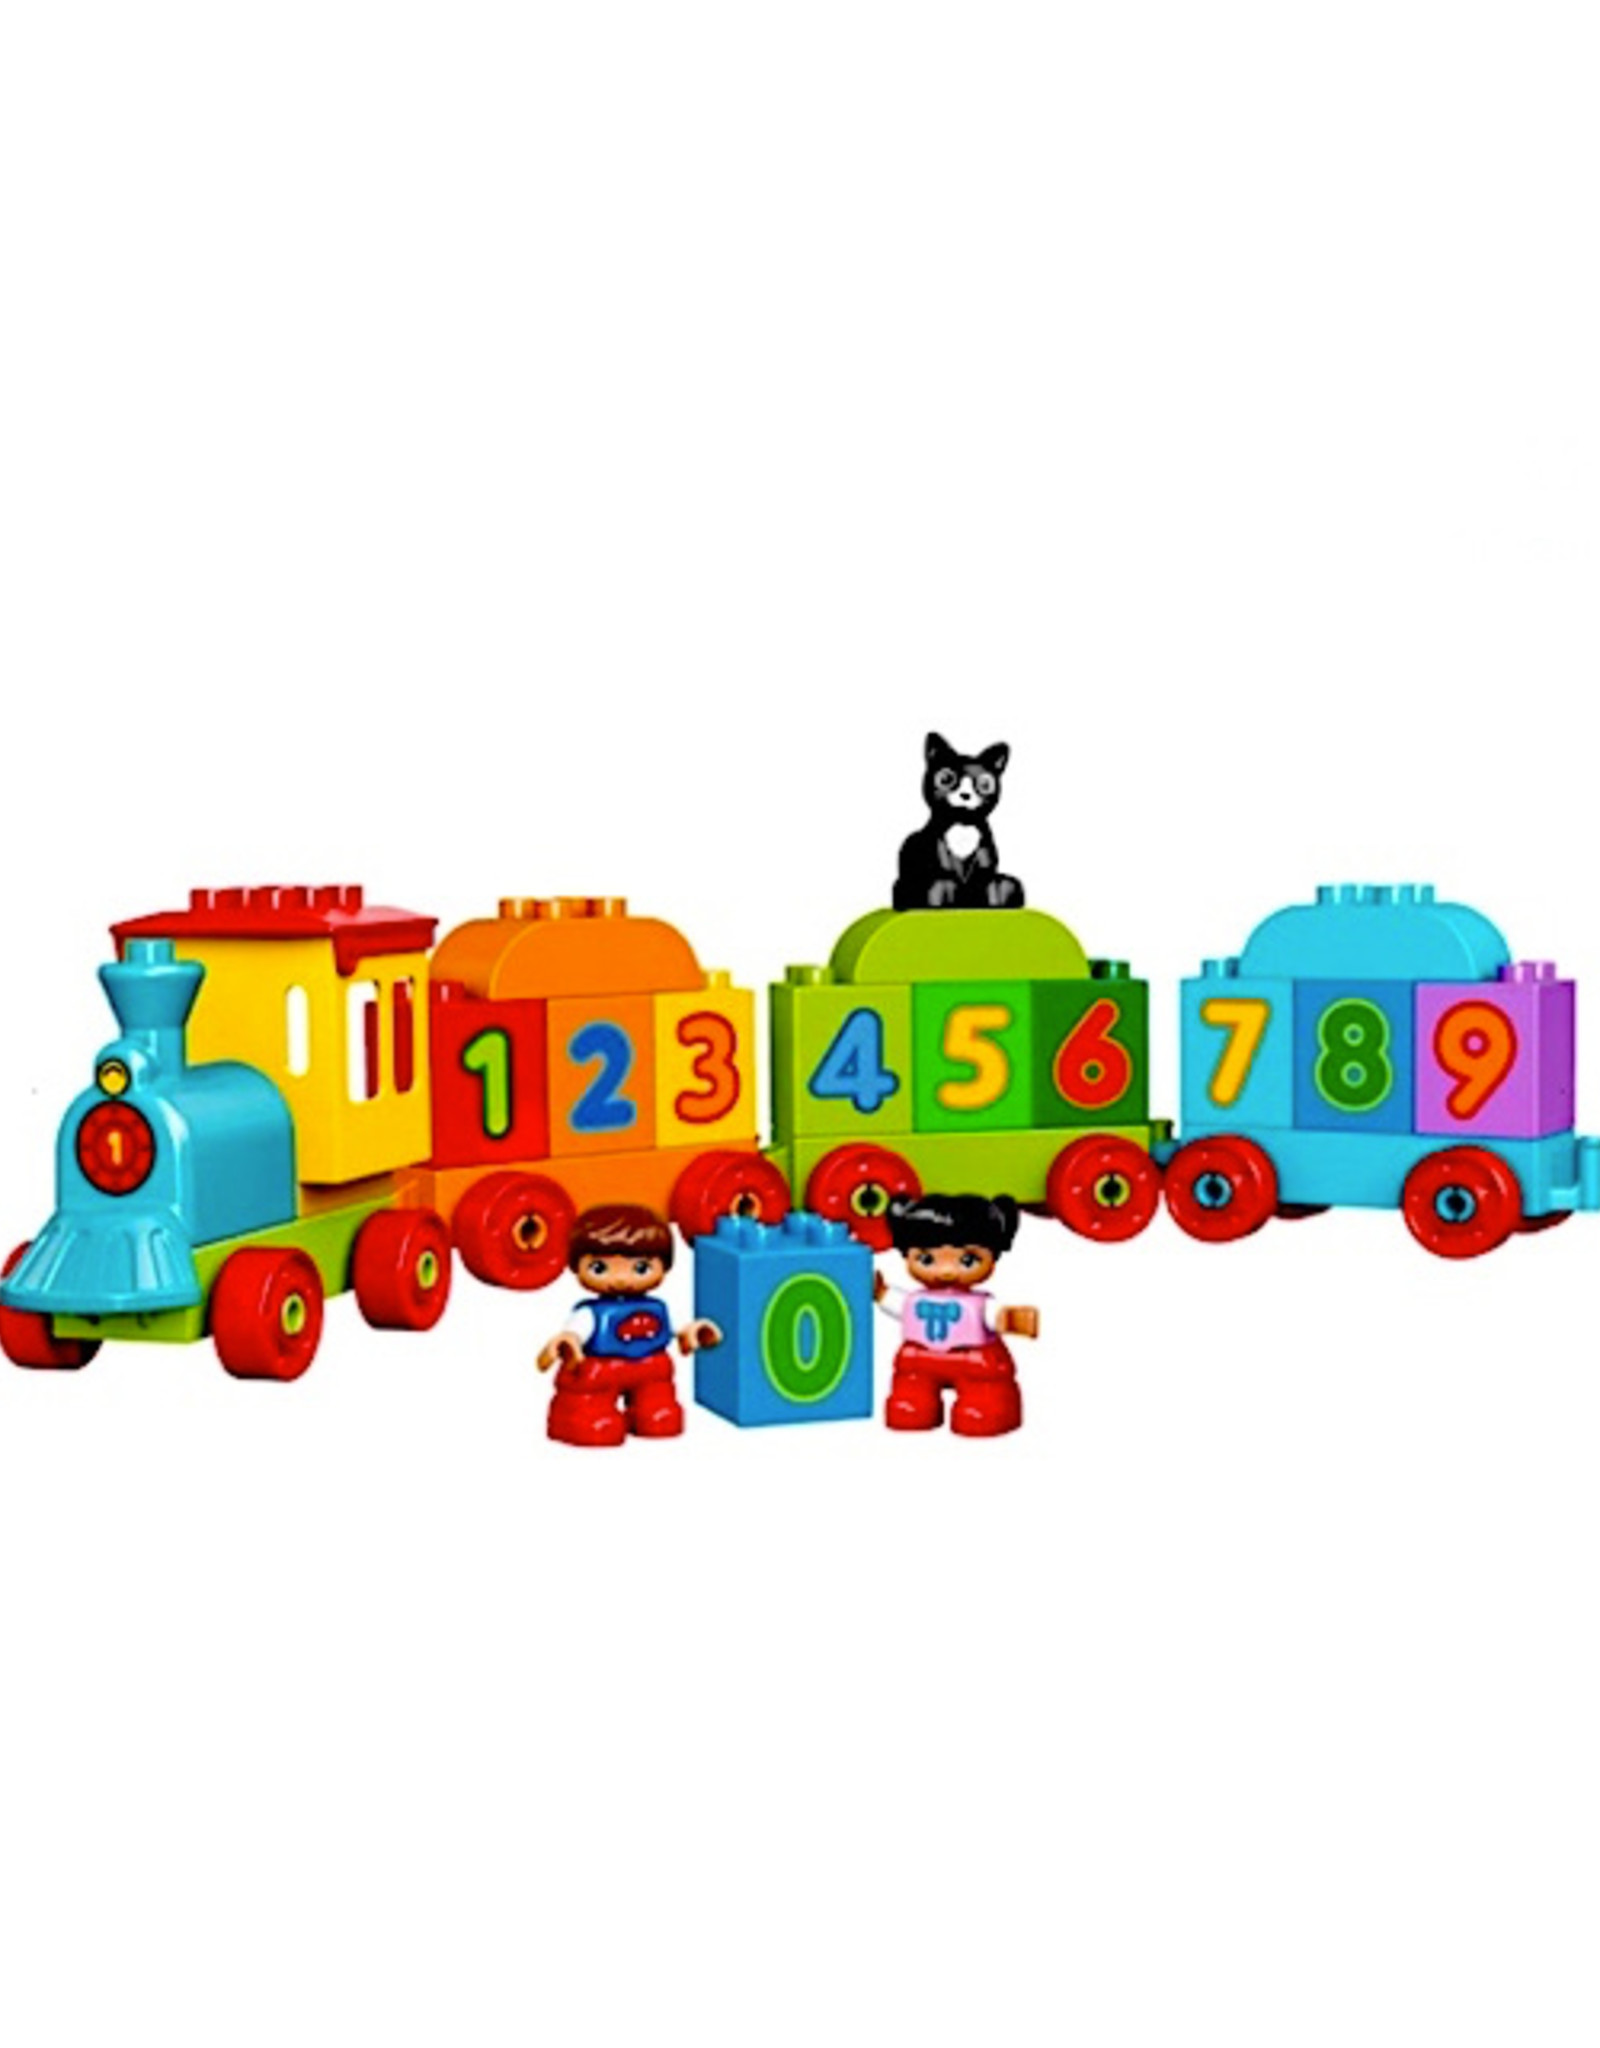 Lego Duplo My 1st Number Train